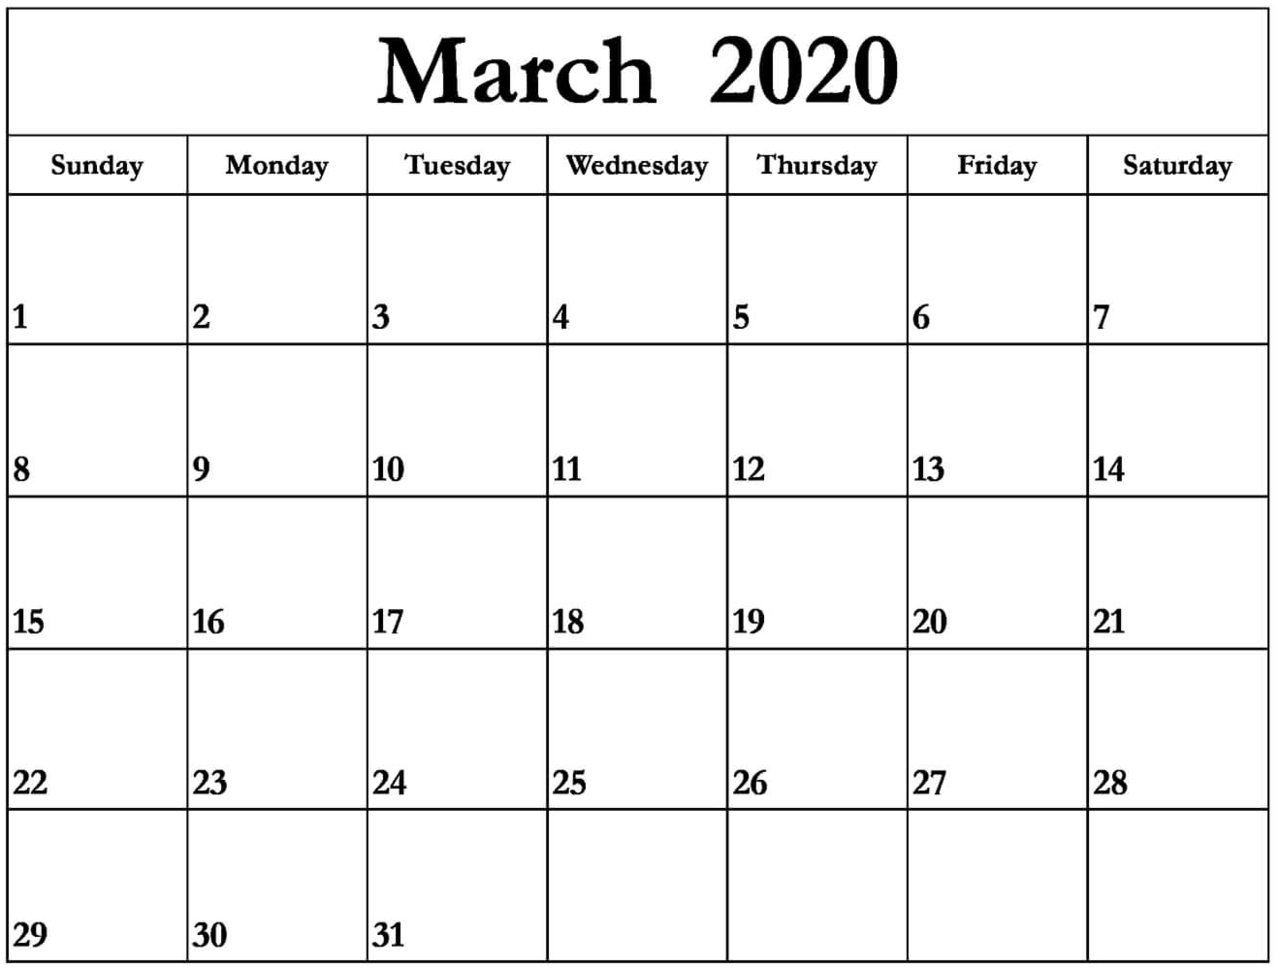 March 2020 Calendar Desk Wallpaper on We Heart It 1280x968